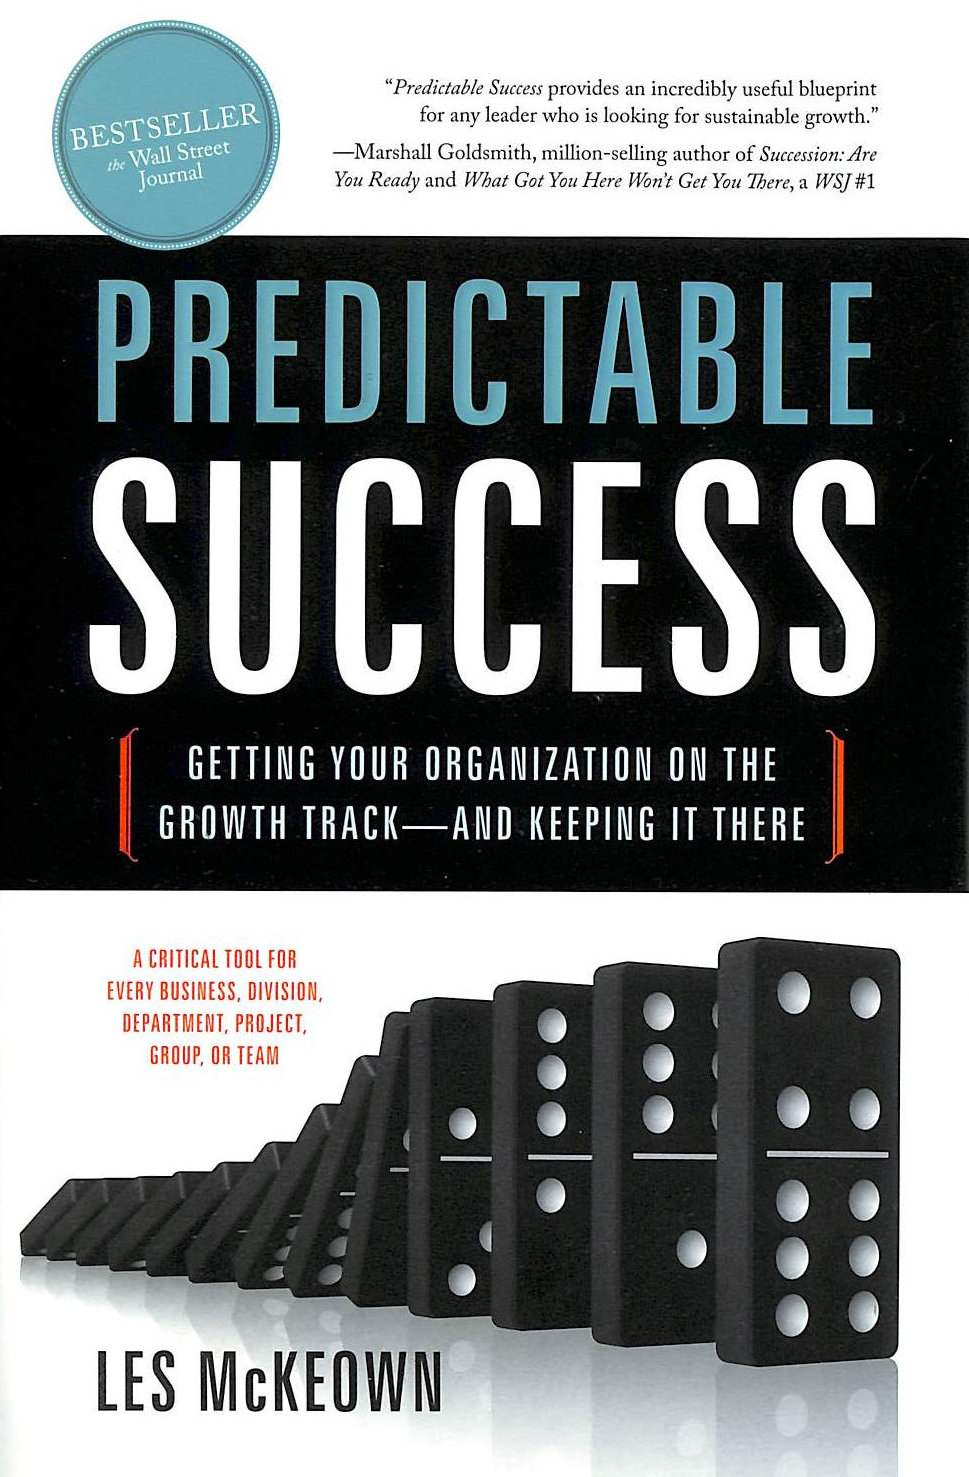 Image for Predictable Success: Getting Your Organization On The Growth Track - And Keeping It There